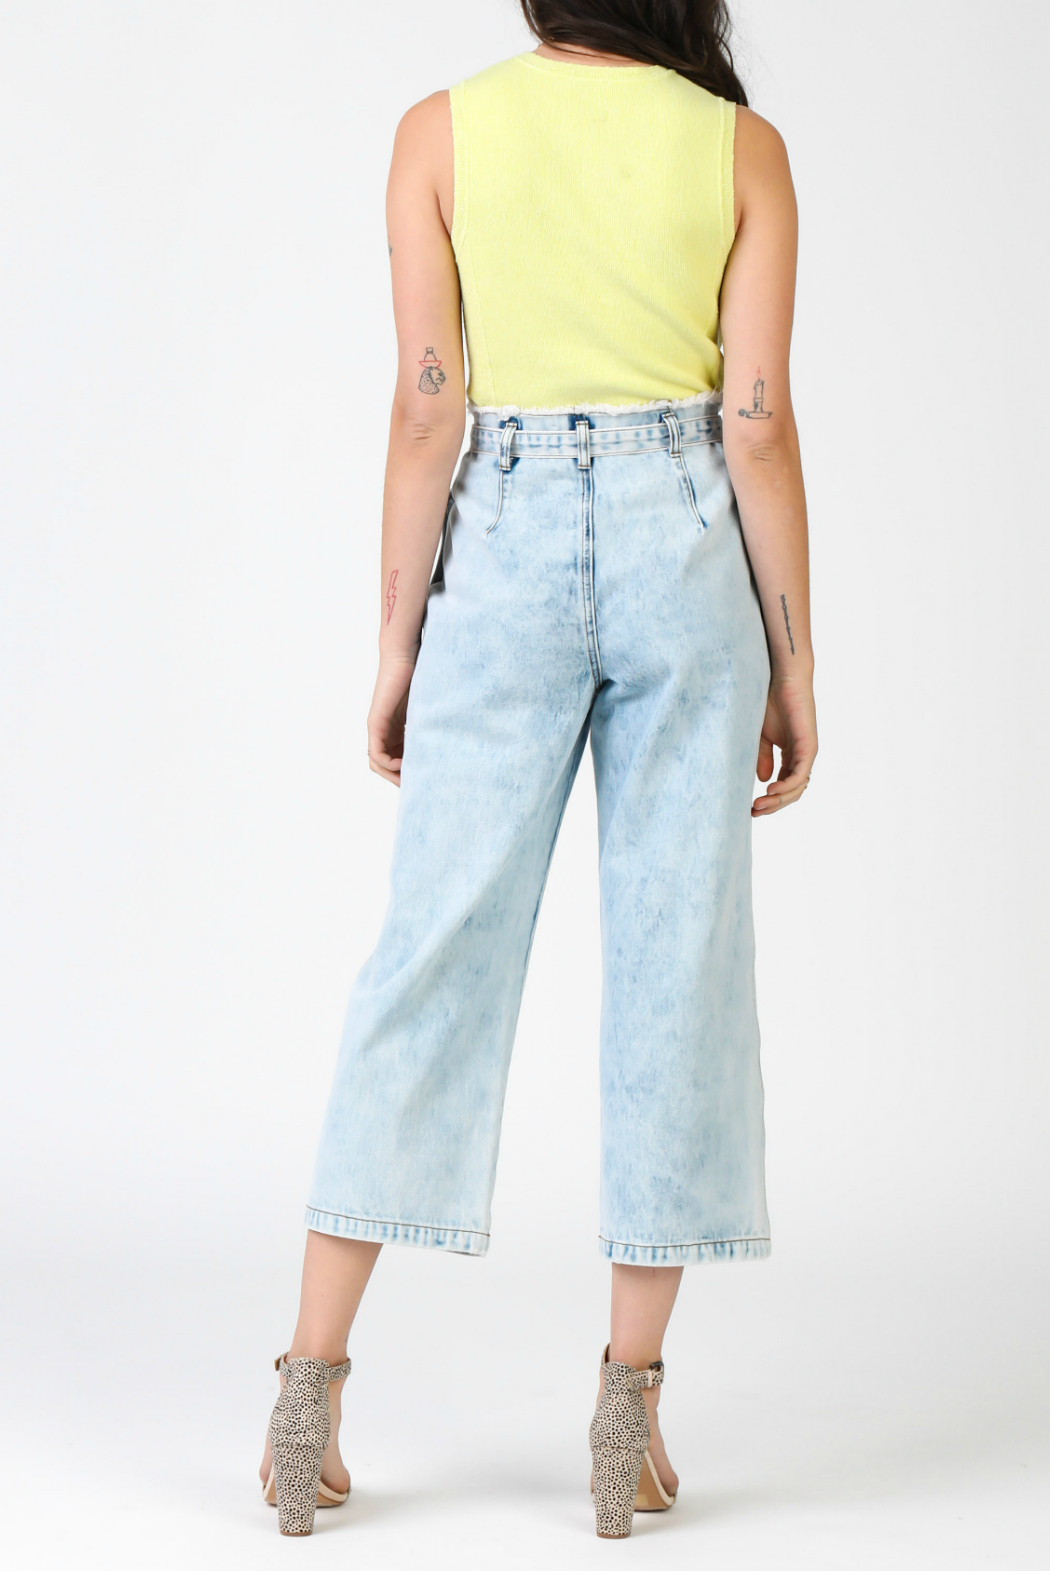 Current Air Denim cropped pants with waist tie - Front Full Image